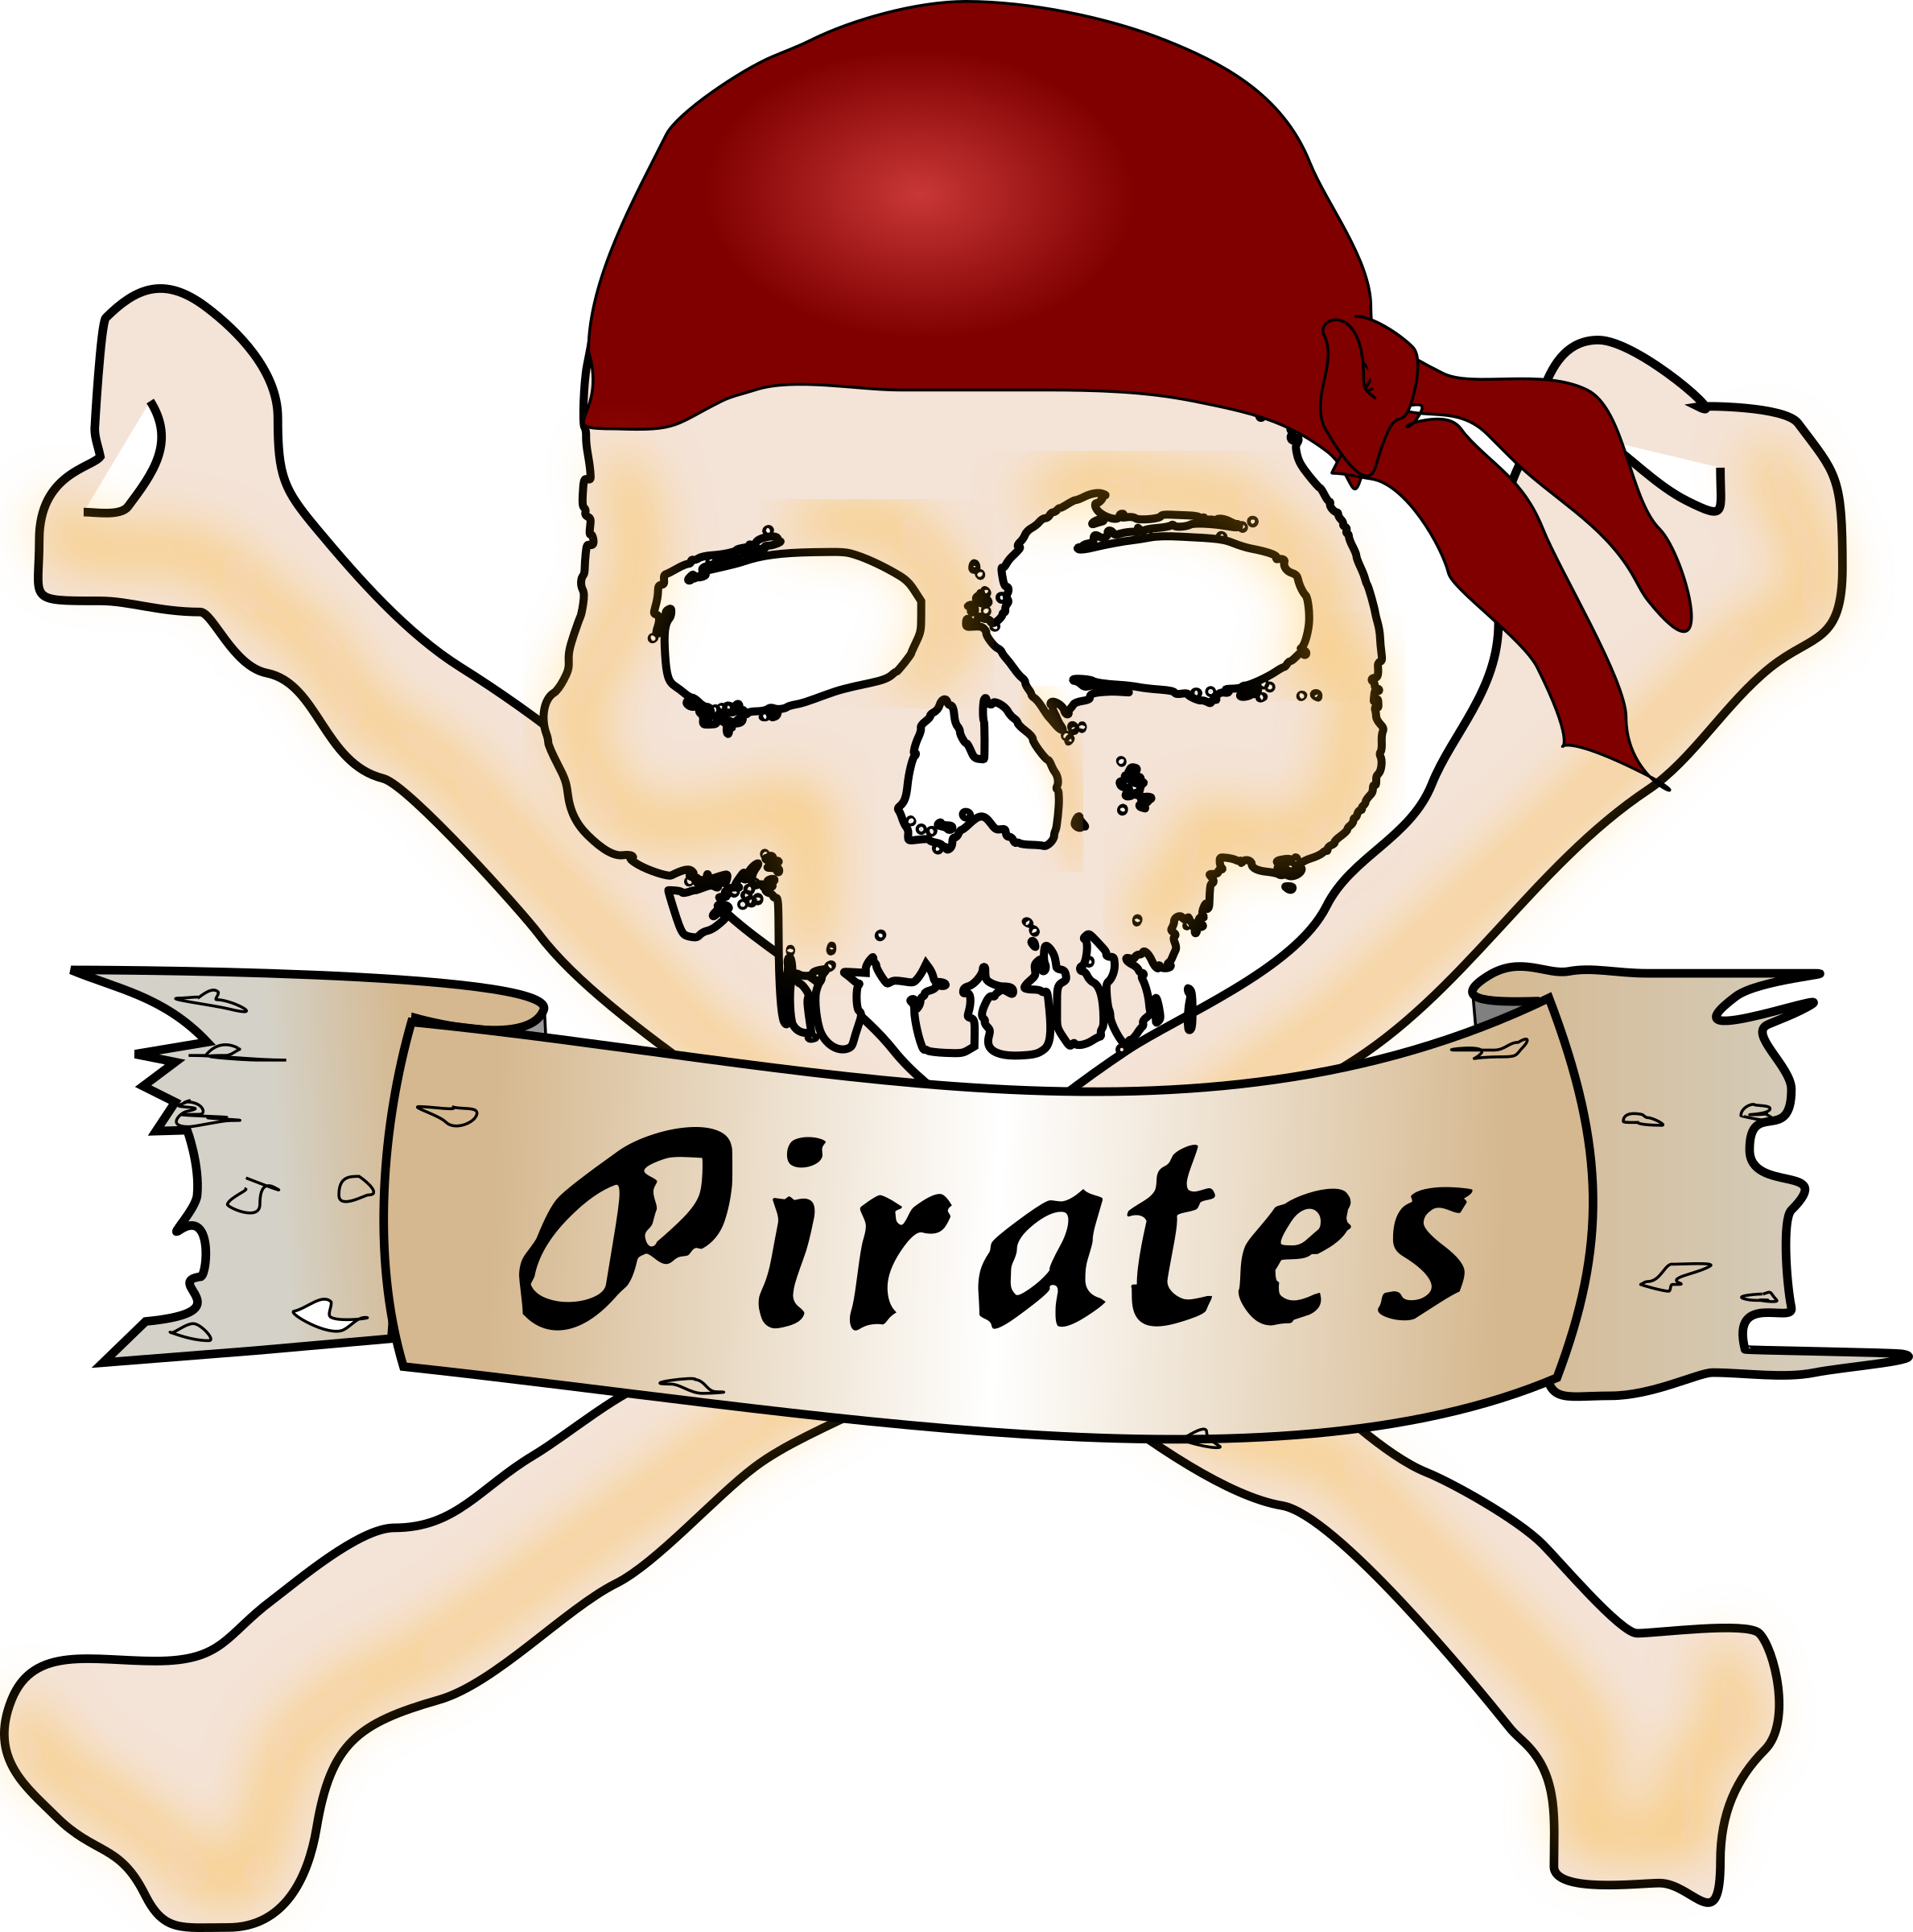 Pirate skull by Chrisdesign